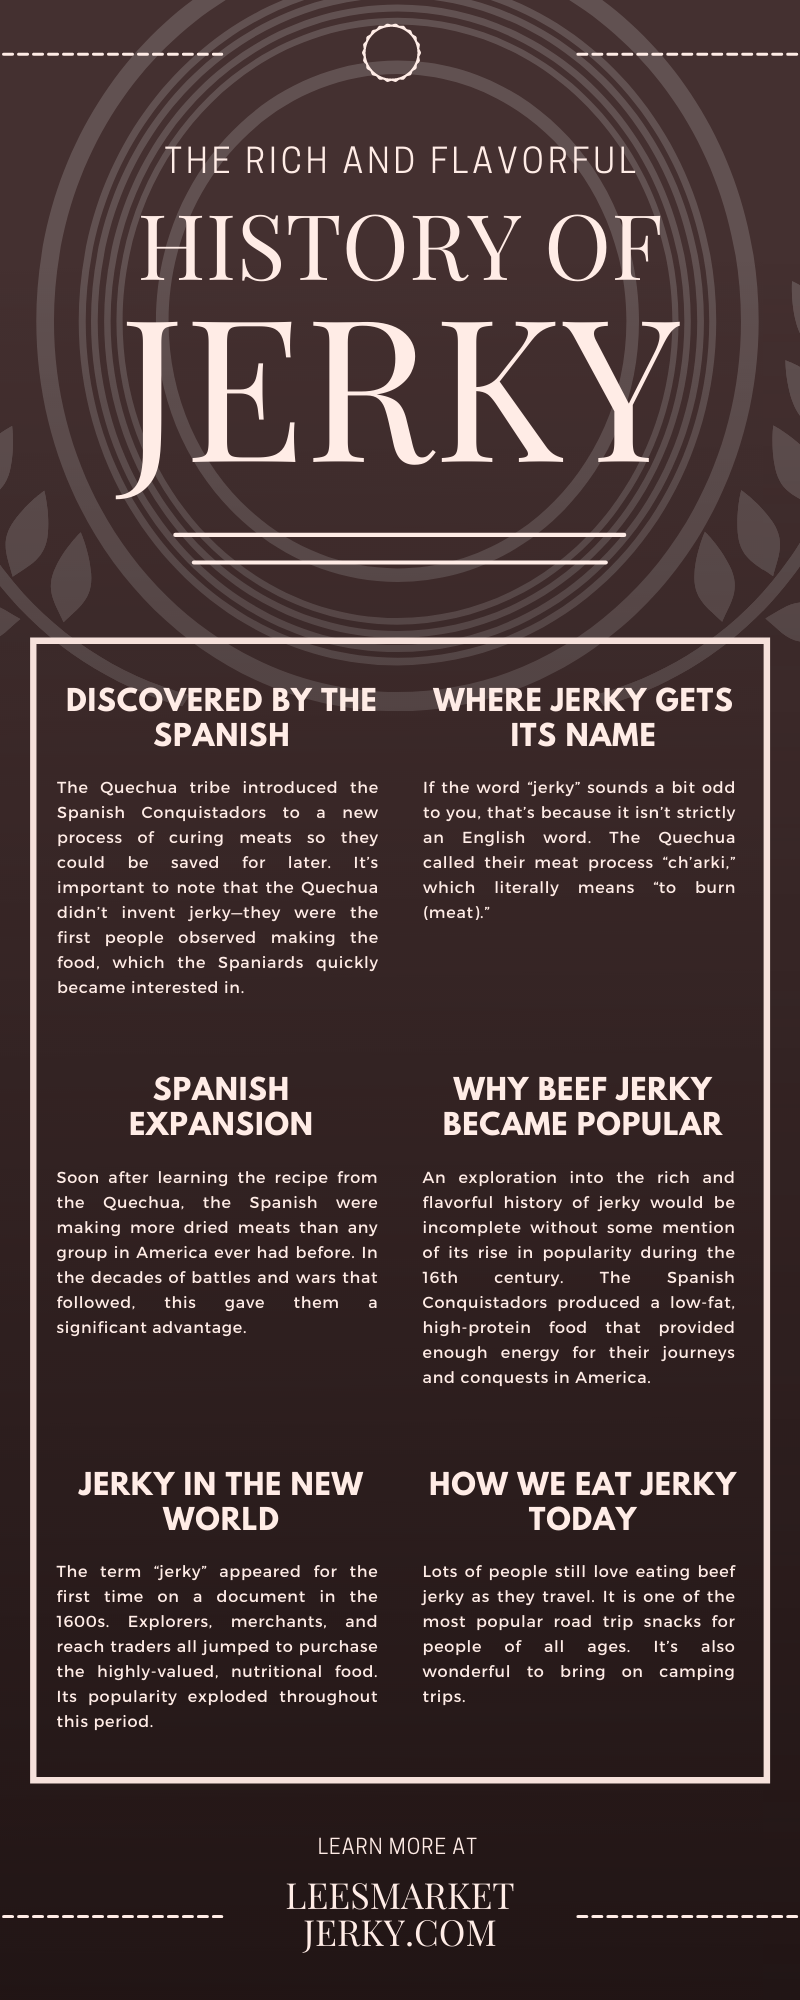 The Rich and Flavorful History of Jerky